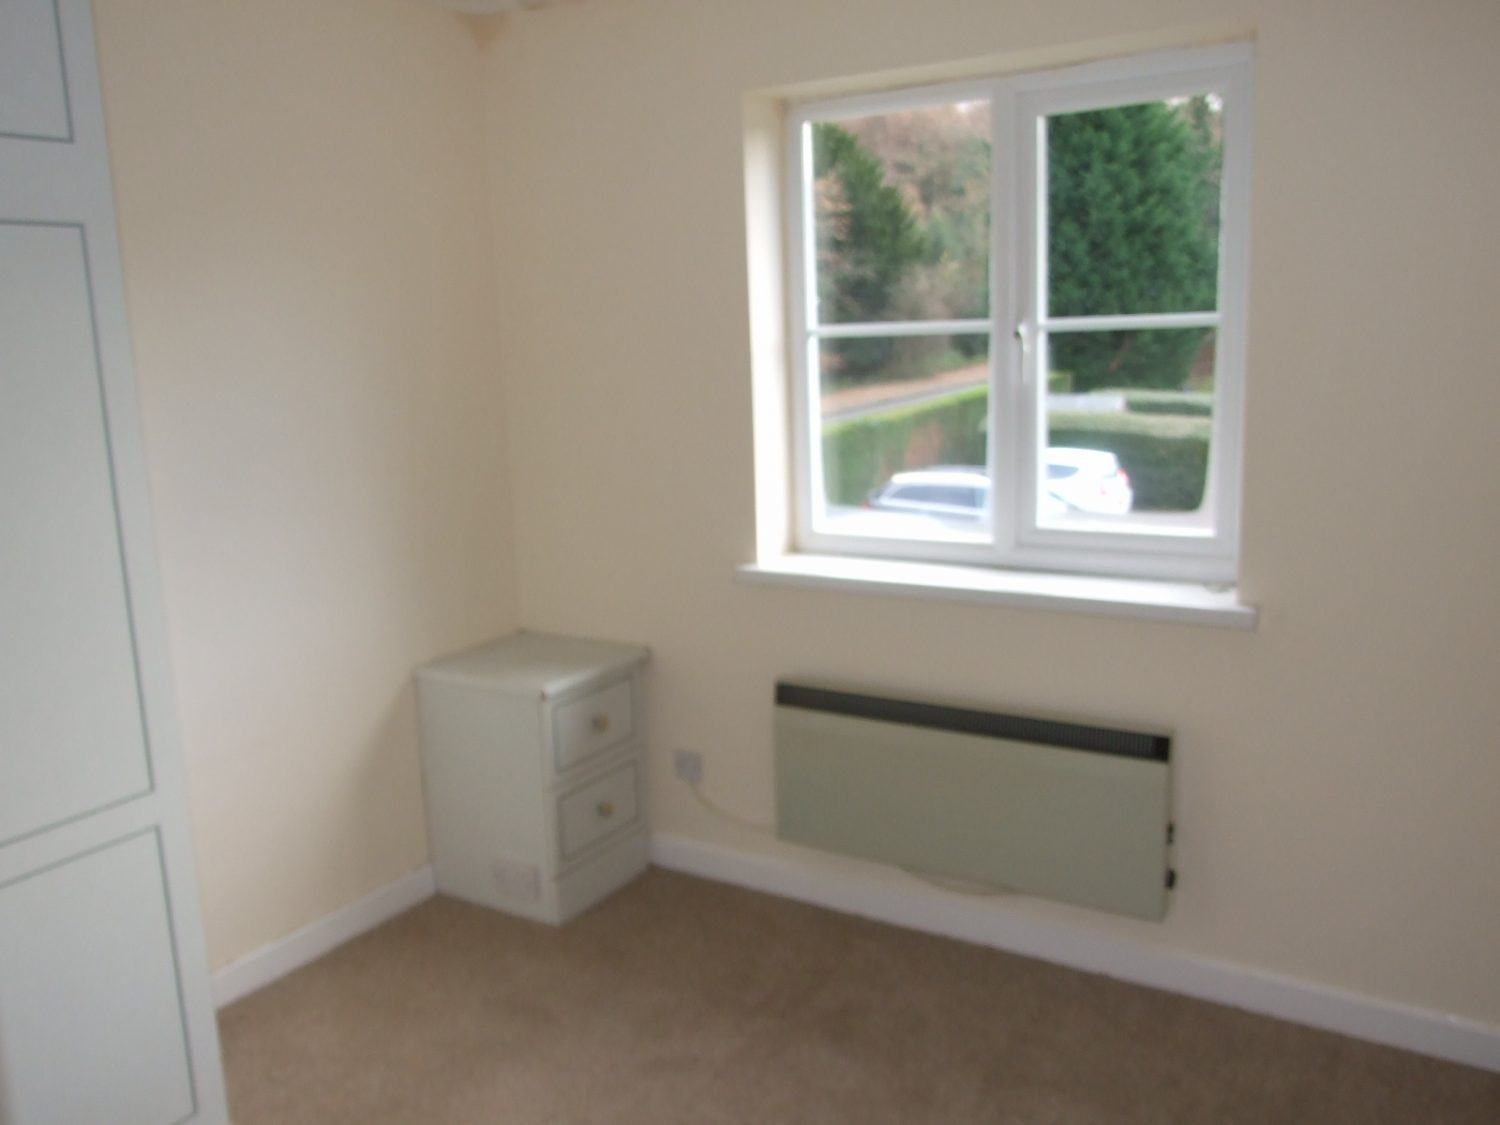 2 Bedroom Apartment For Sale In Woburn Sands Mk17 8pa